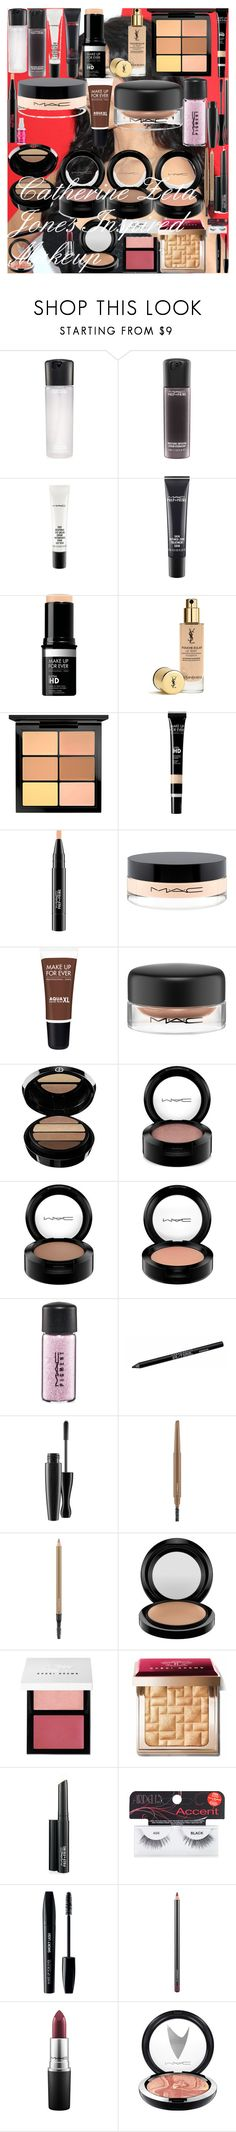 """""""Catherine Zeta Jones Inspired Makeup"""" by oroartye-1 on Polyvore featuring beauty, MAC Cosmetics, MAKE UP FOR EVER, Yves Saint Laurent, Giorgio Armani, Urban Decay, Bobbi Brown Cosmetics, Ardell and Barry M"""